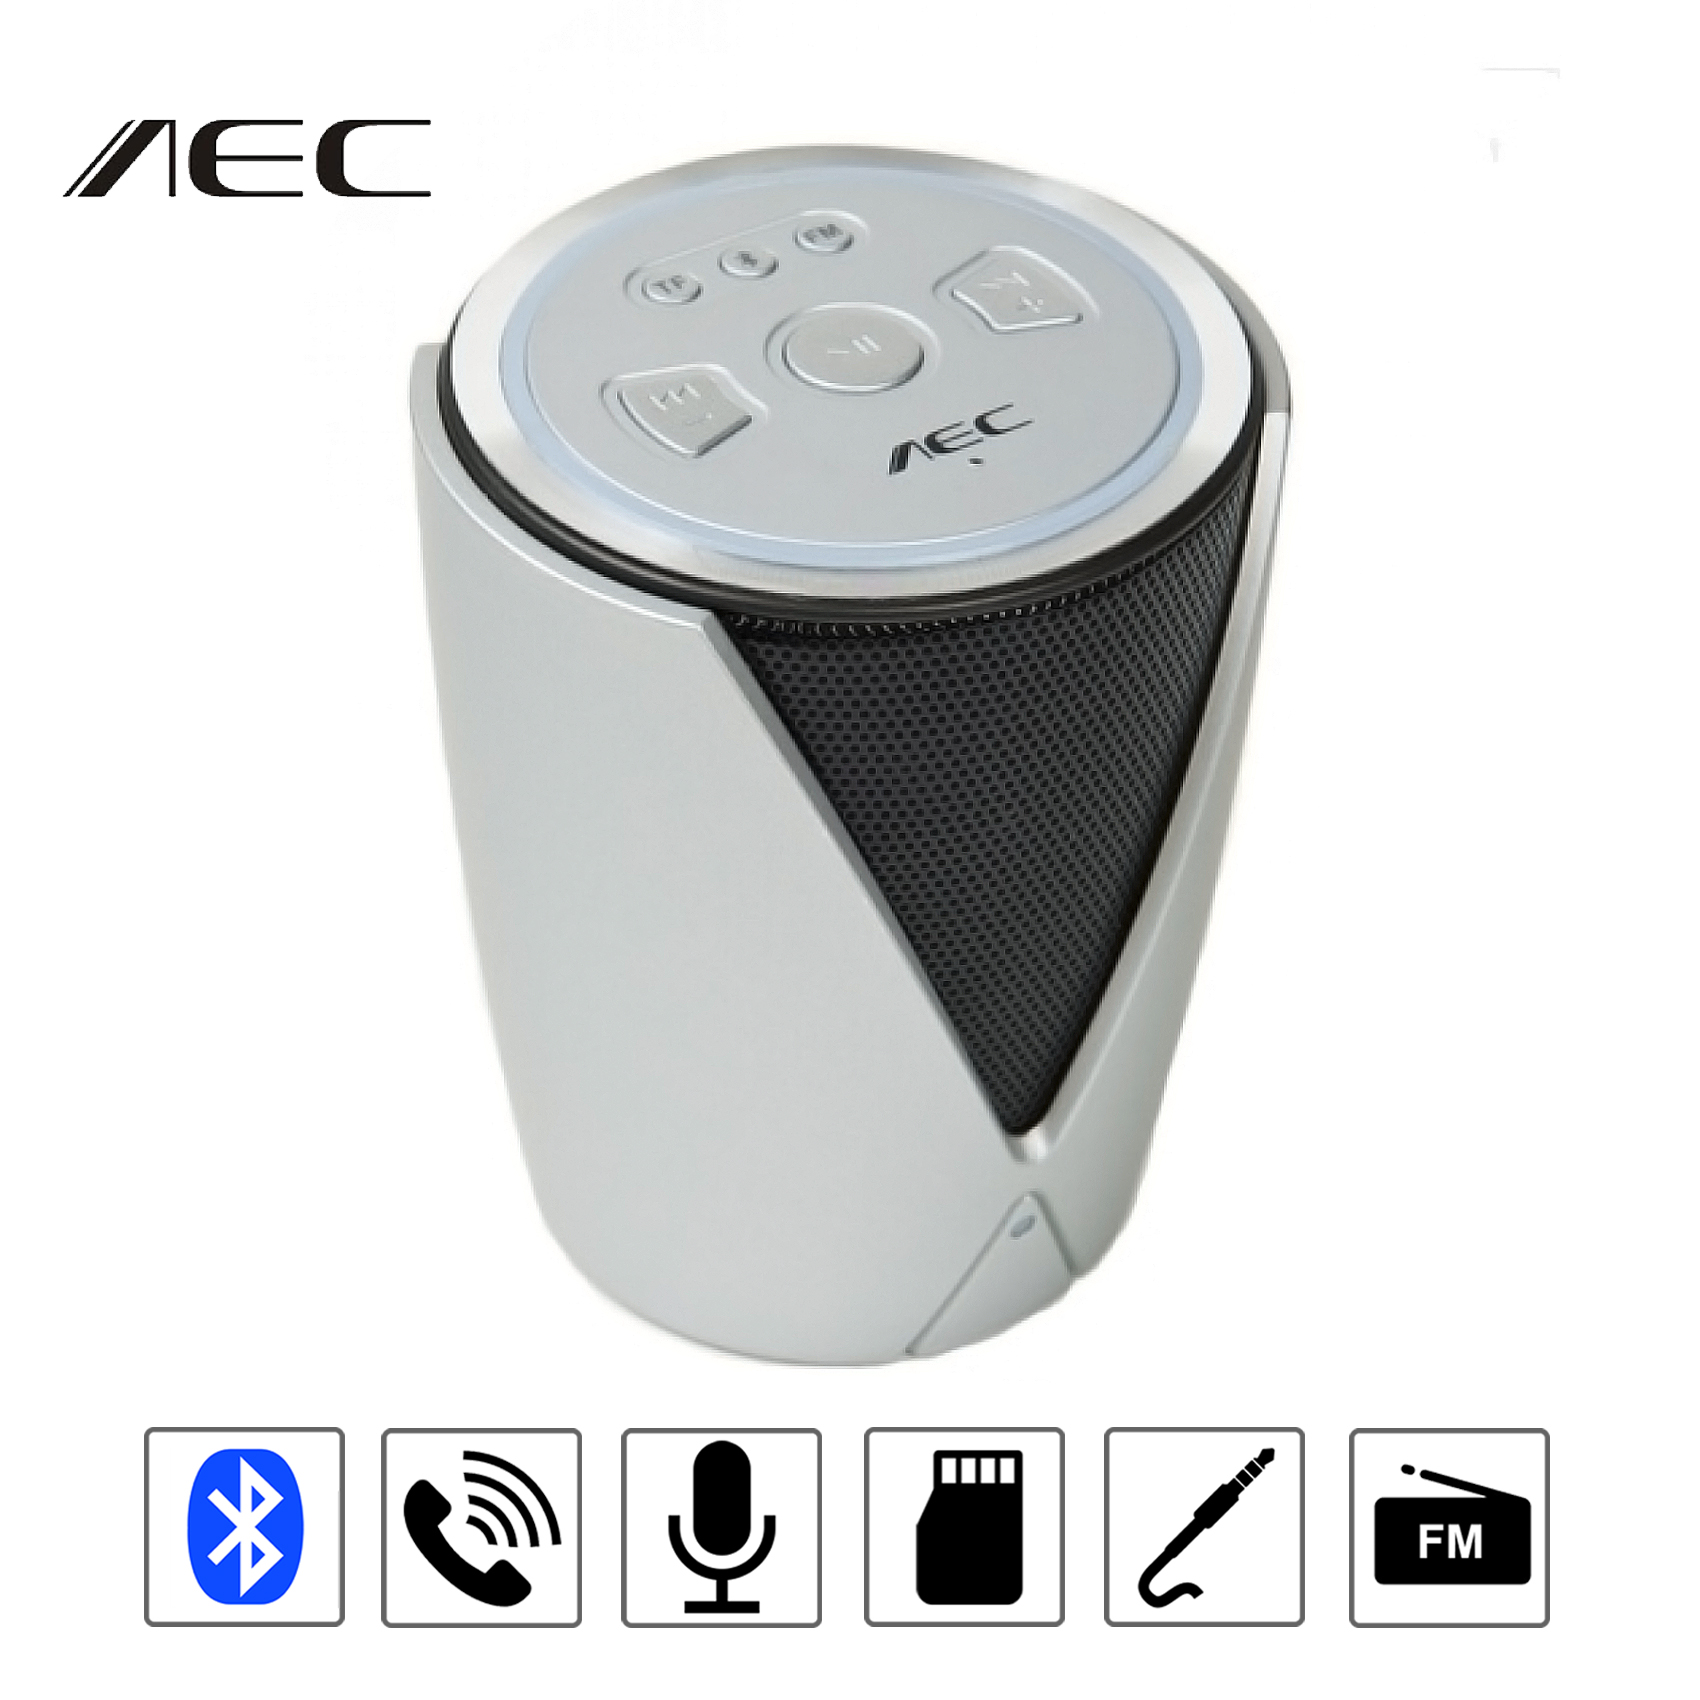 Multifunction Bluetooth Speaker With FM Radio And MP3 Player - Silver